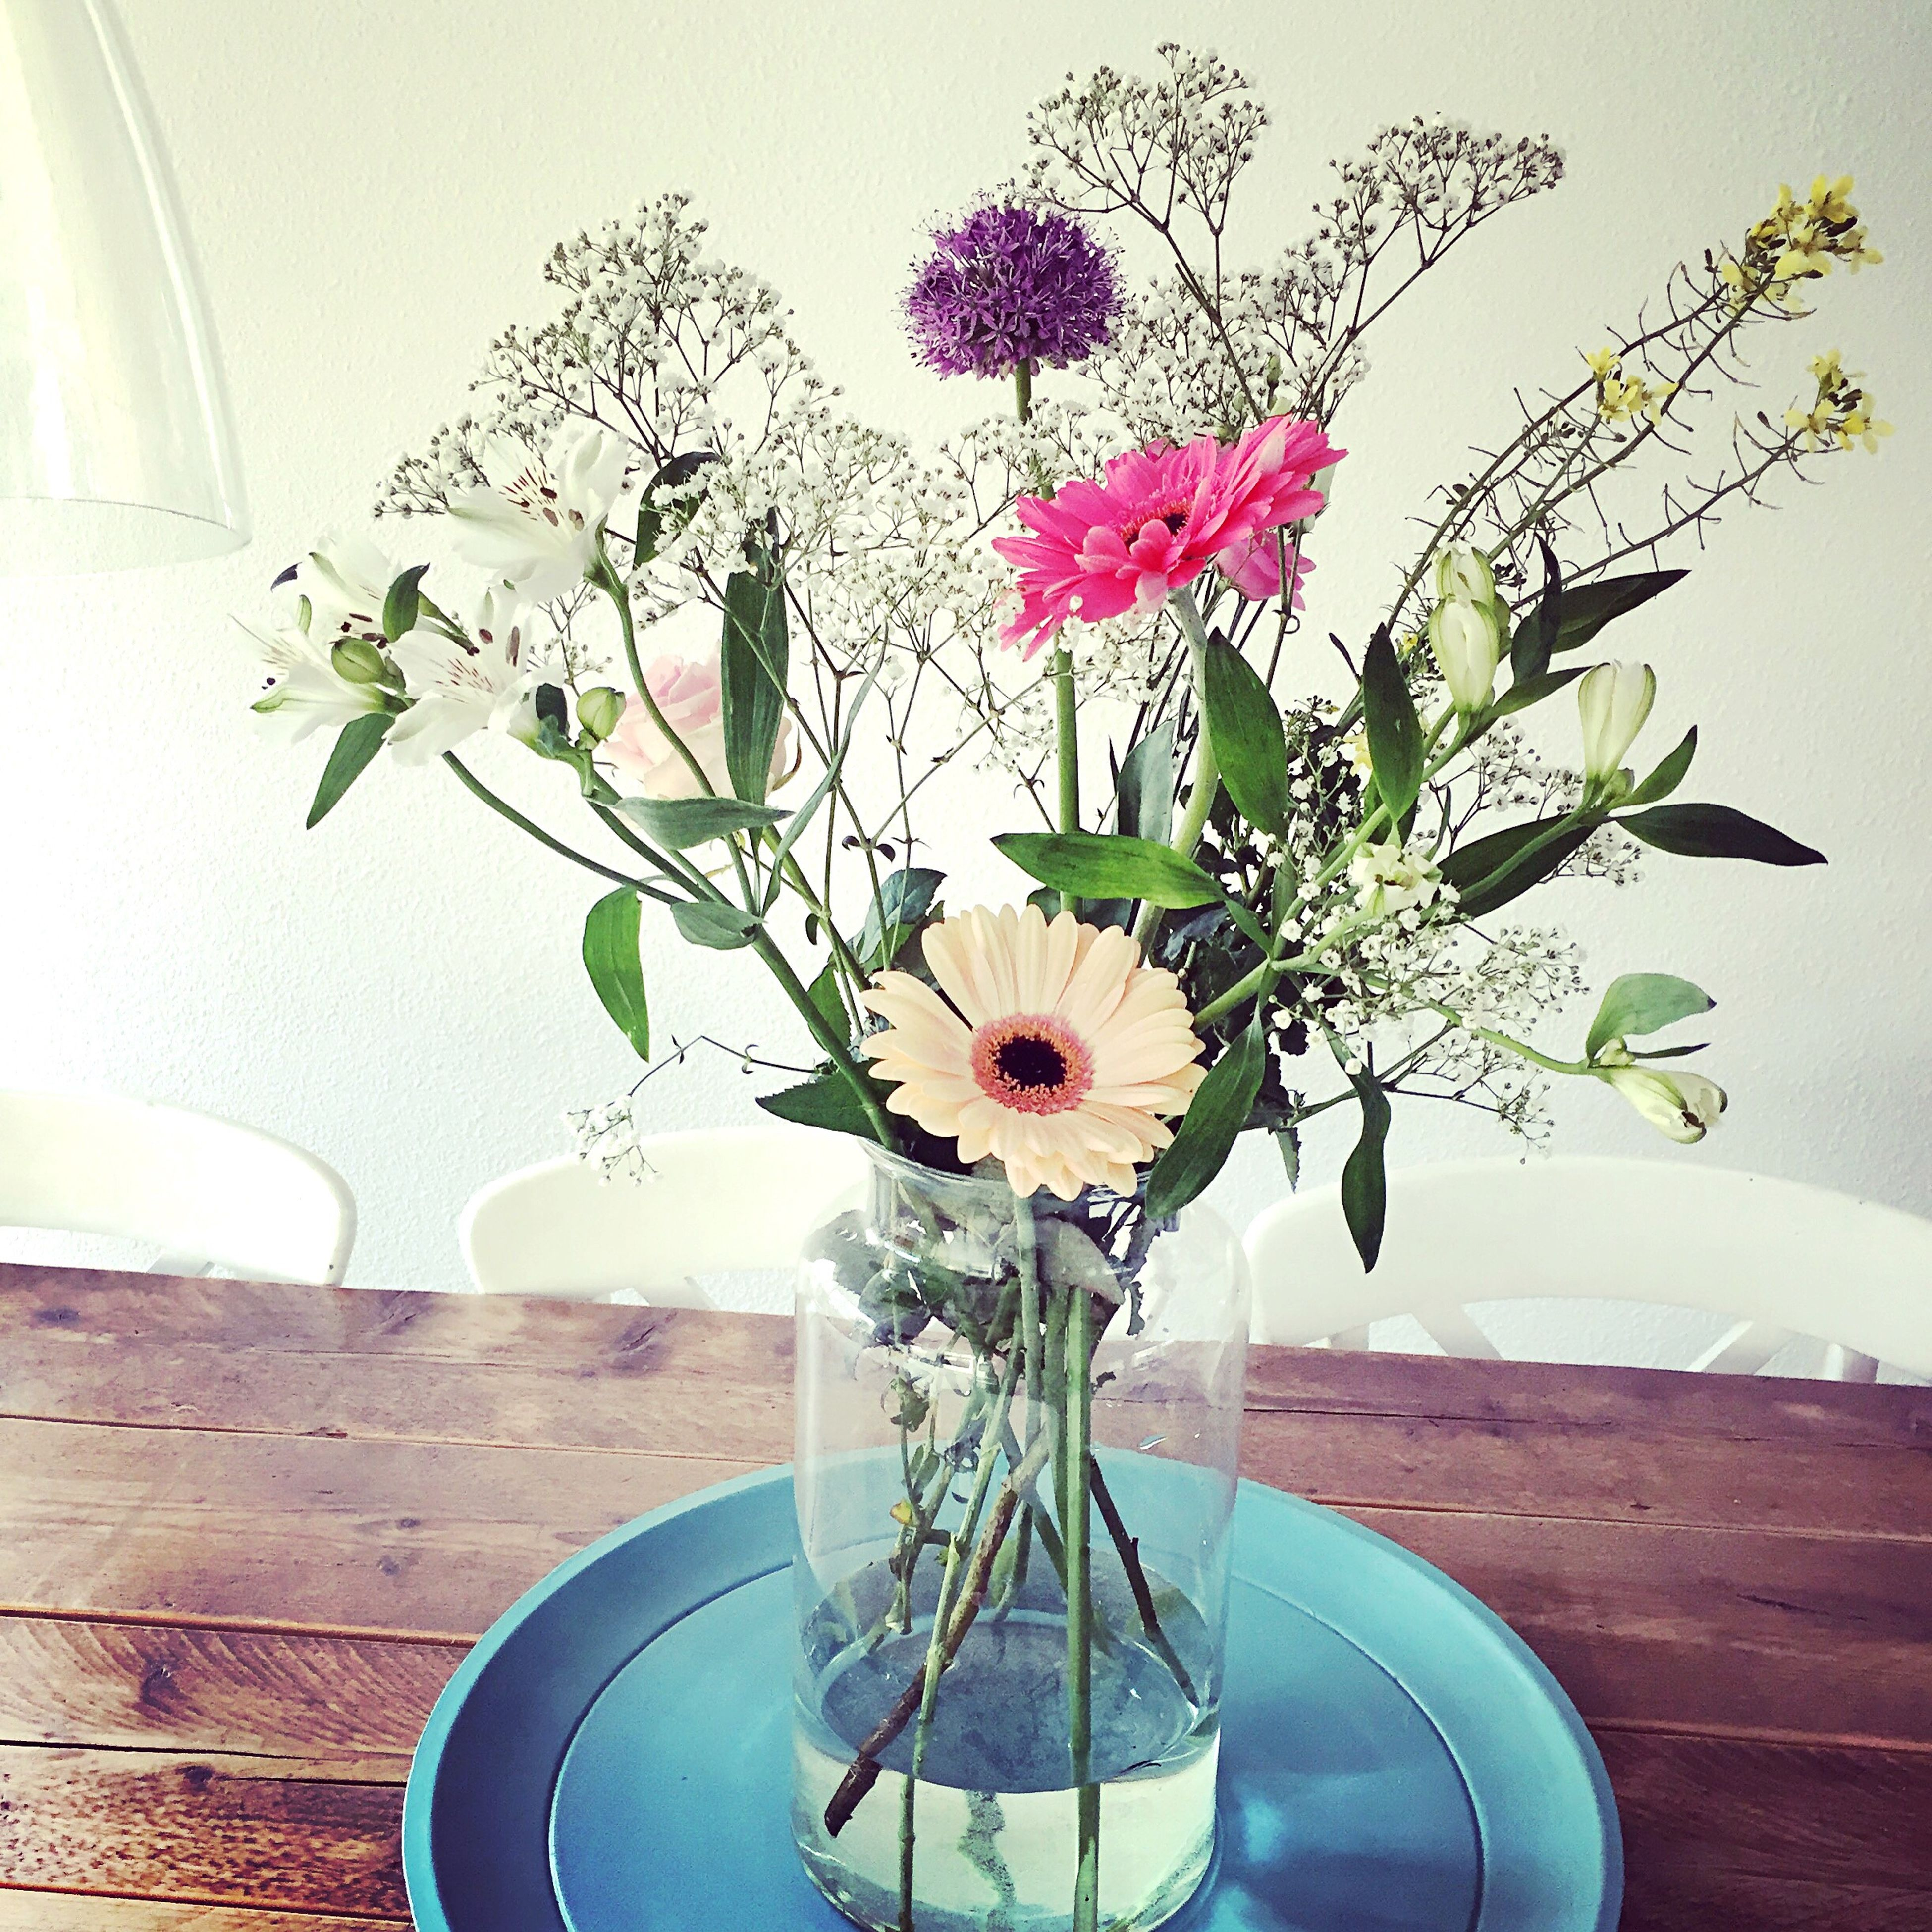 flower, vase, indoors, potted plant, freshness, fragility, wall - building feature, petal, plant, growth, flower pot, flower head, home interior, wall, decoration, stem, beauty in nature, table, flower arrangement, nature